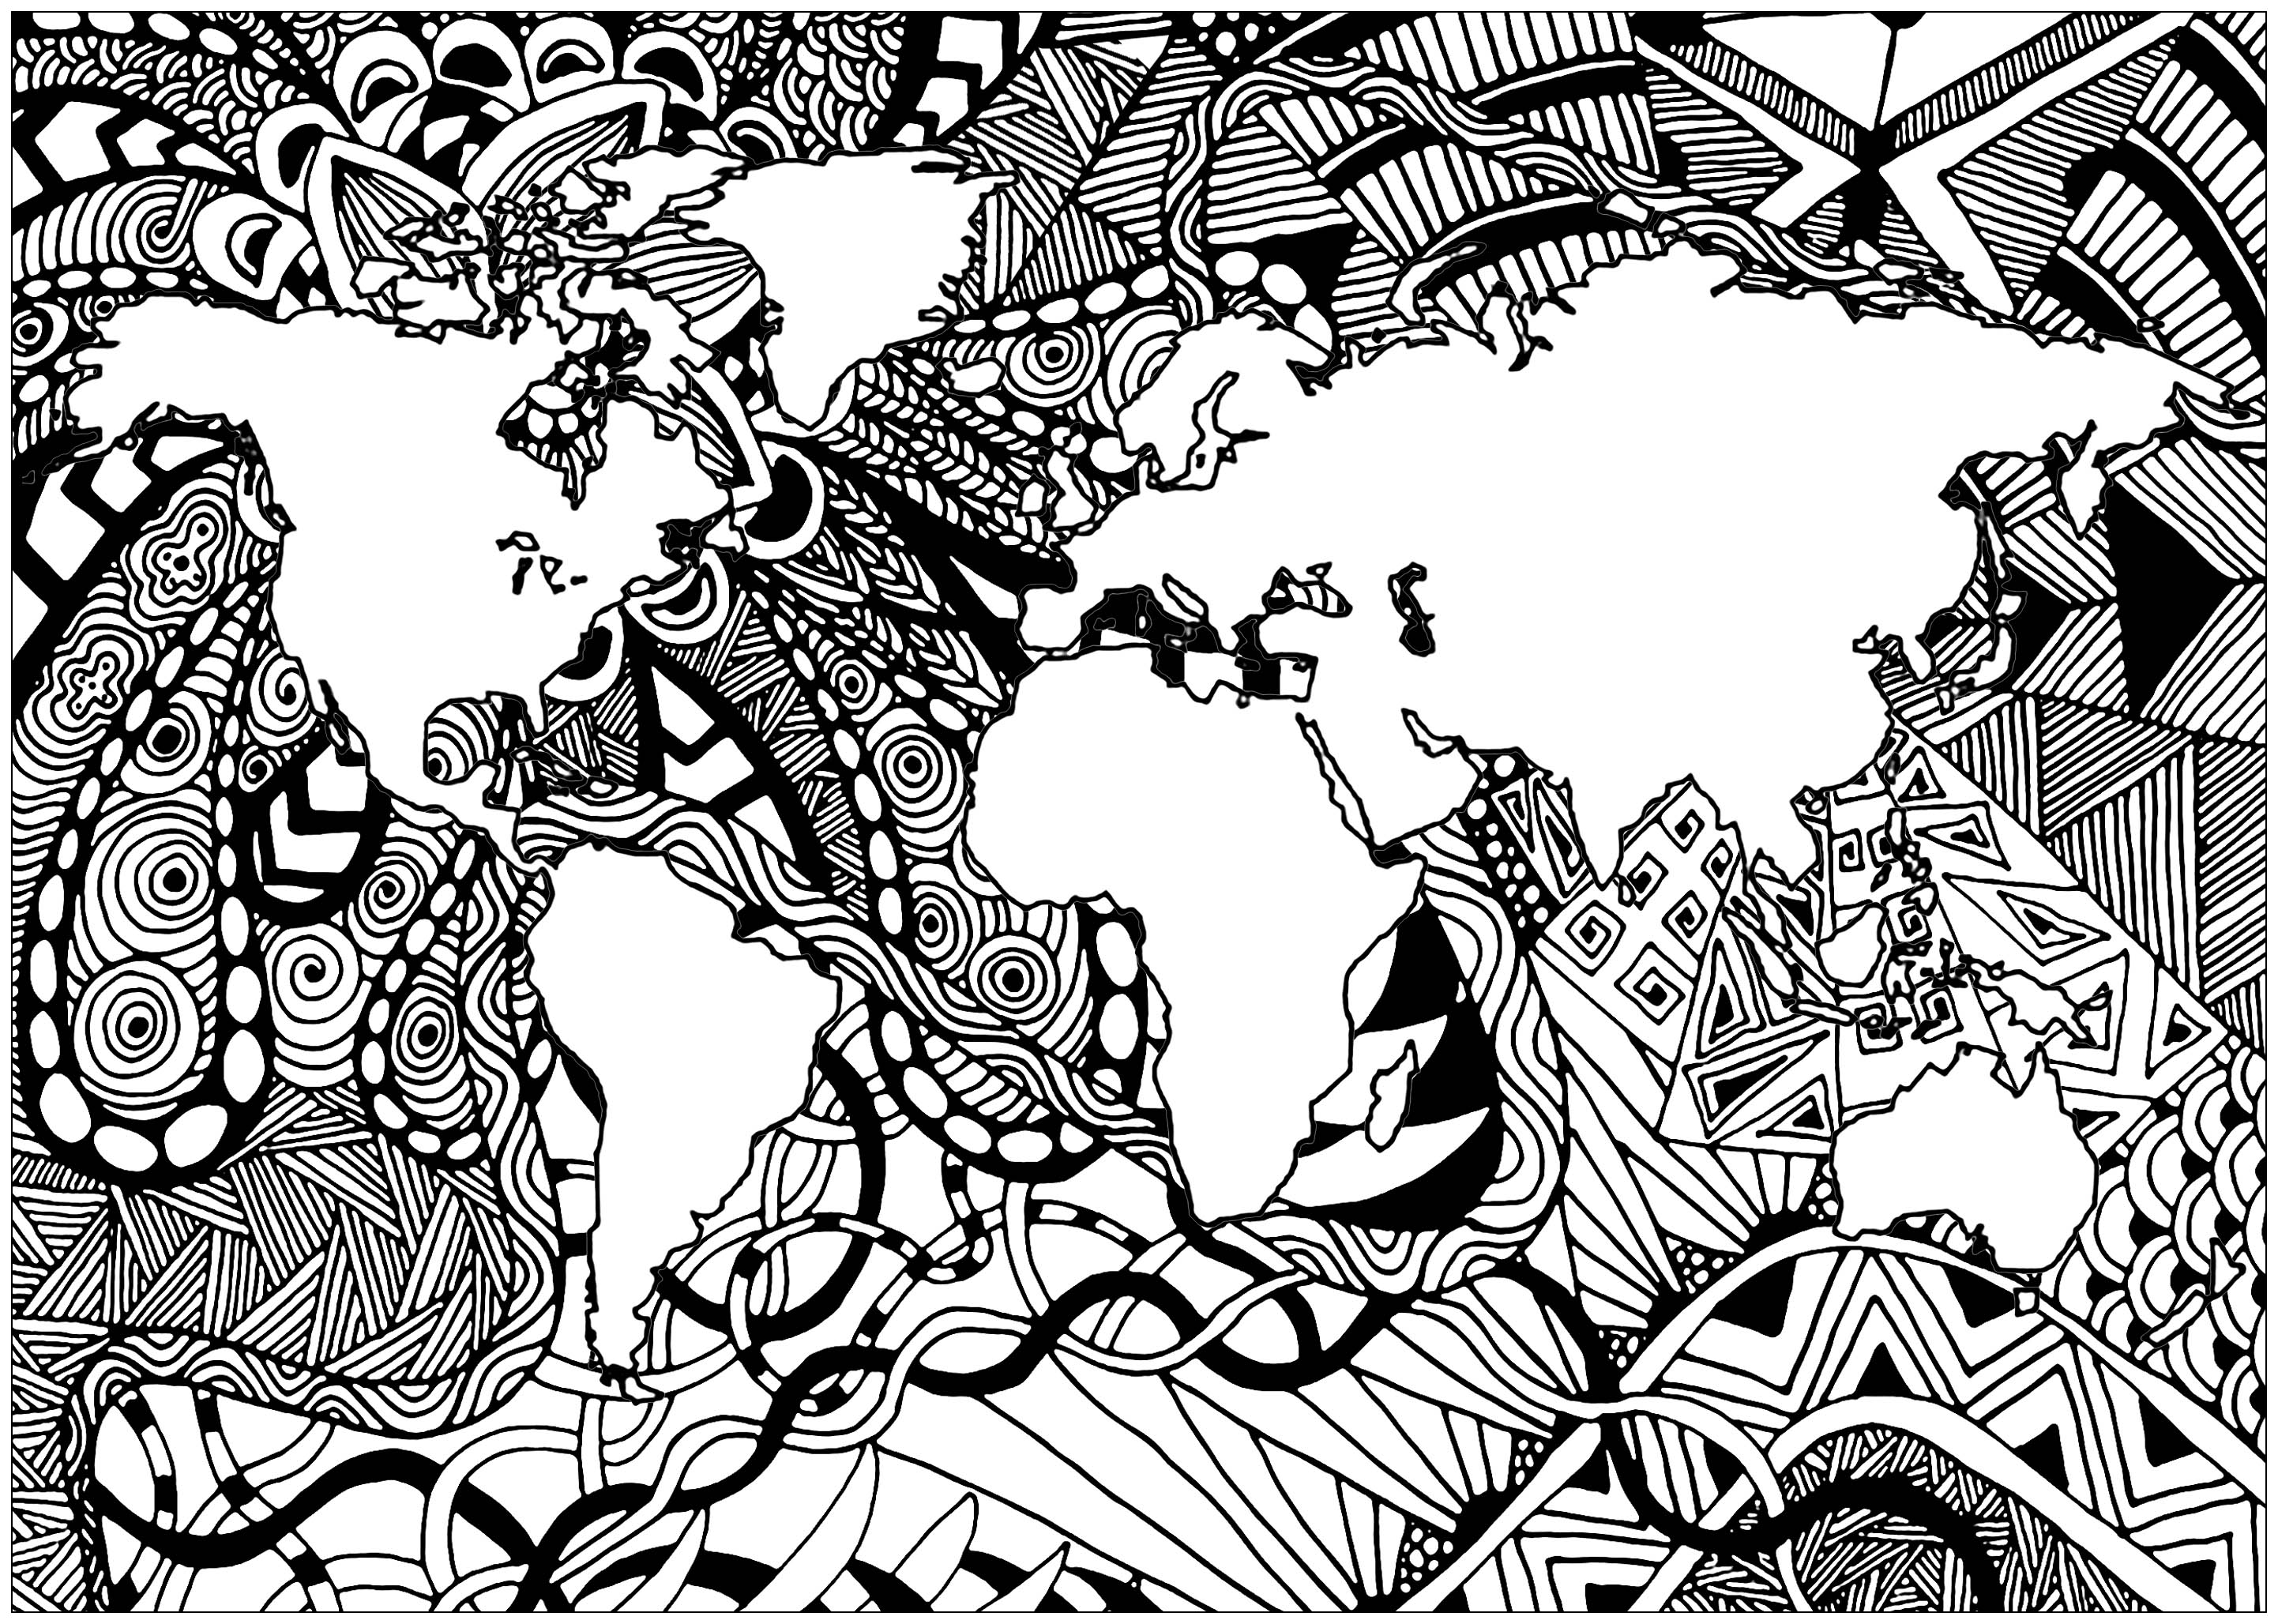 Our planet Earth and its continents, with complex Zentangle patterns outside the lands